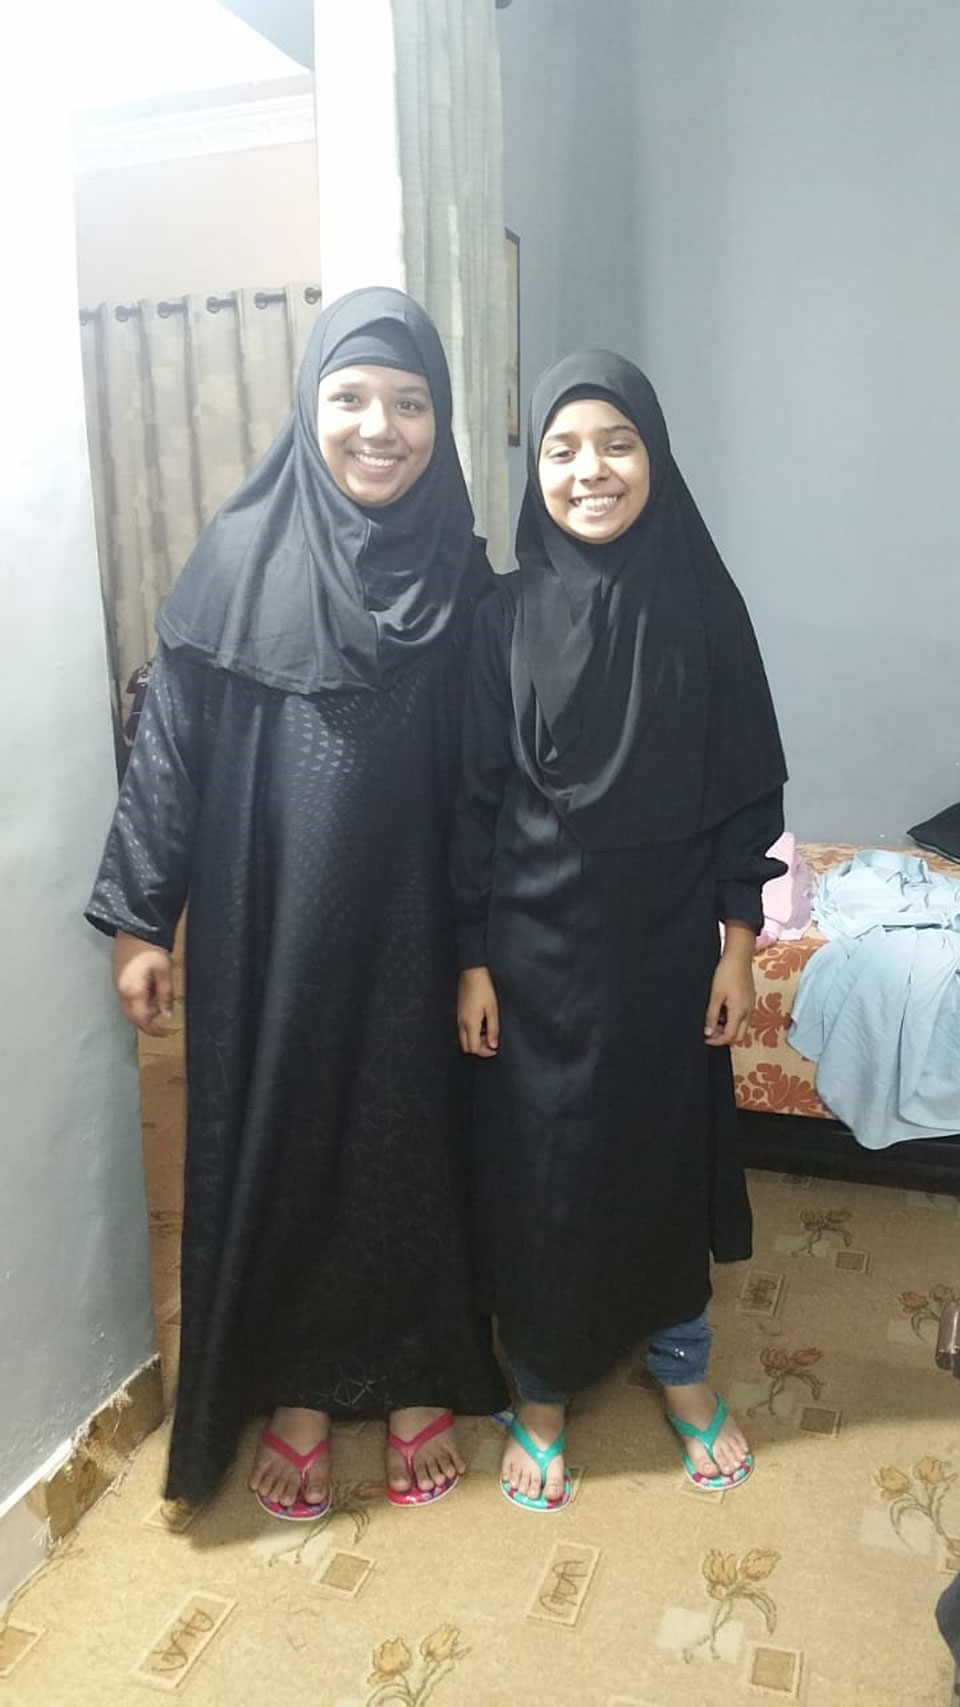 The two sisters Zoya and Zara in Abaya